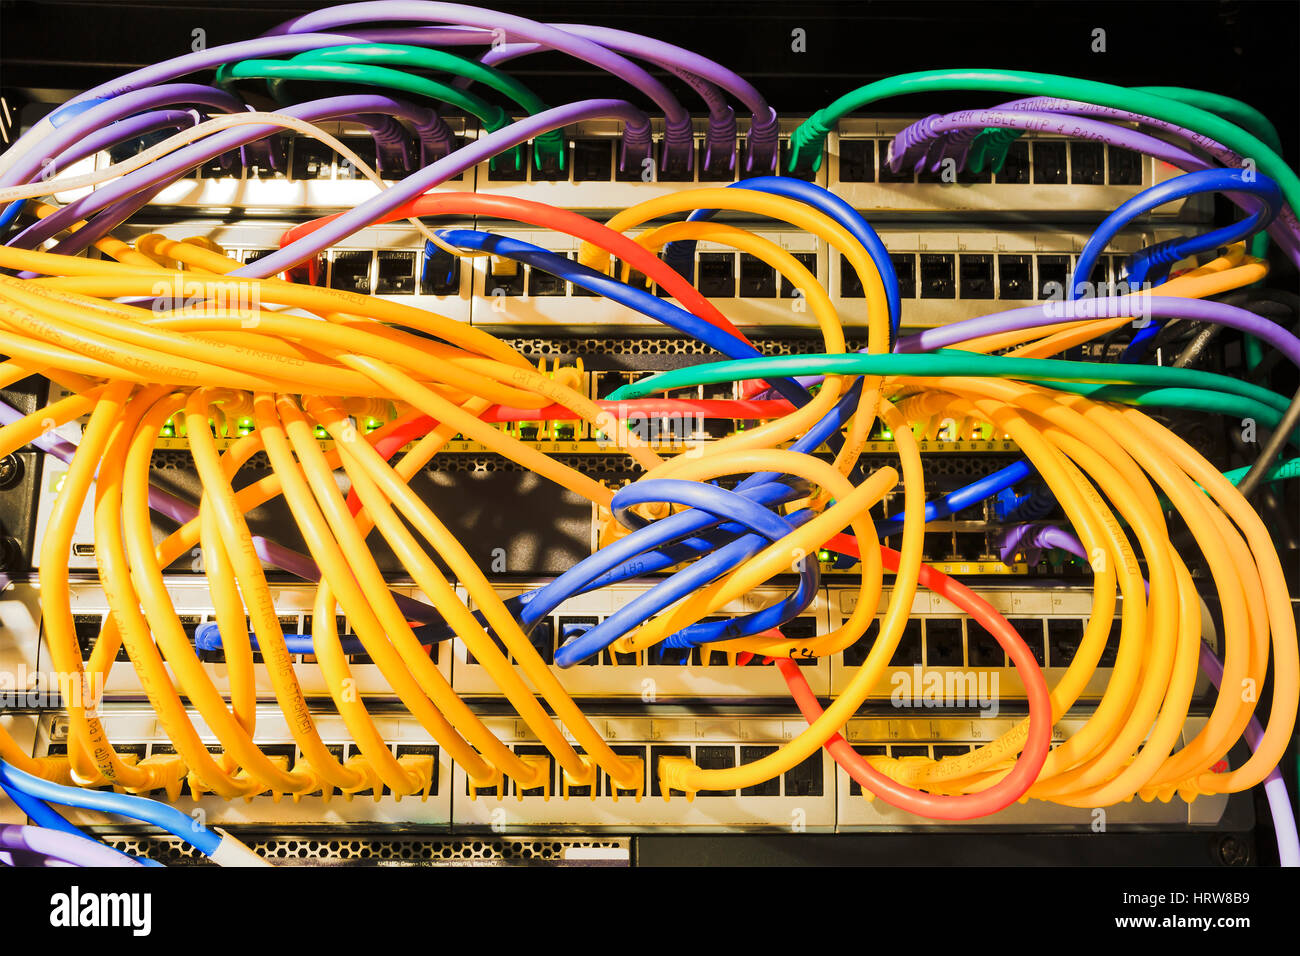 Patch panels, sockets, patch cables connected to the network equipment inside the rack of Data Centre. - Stock Image